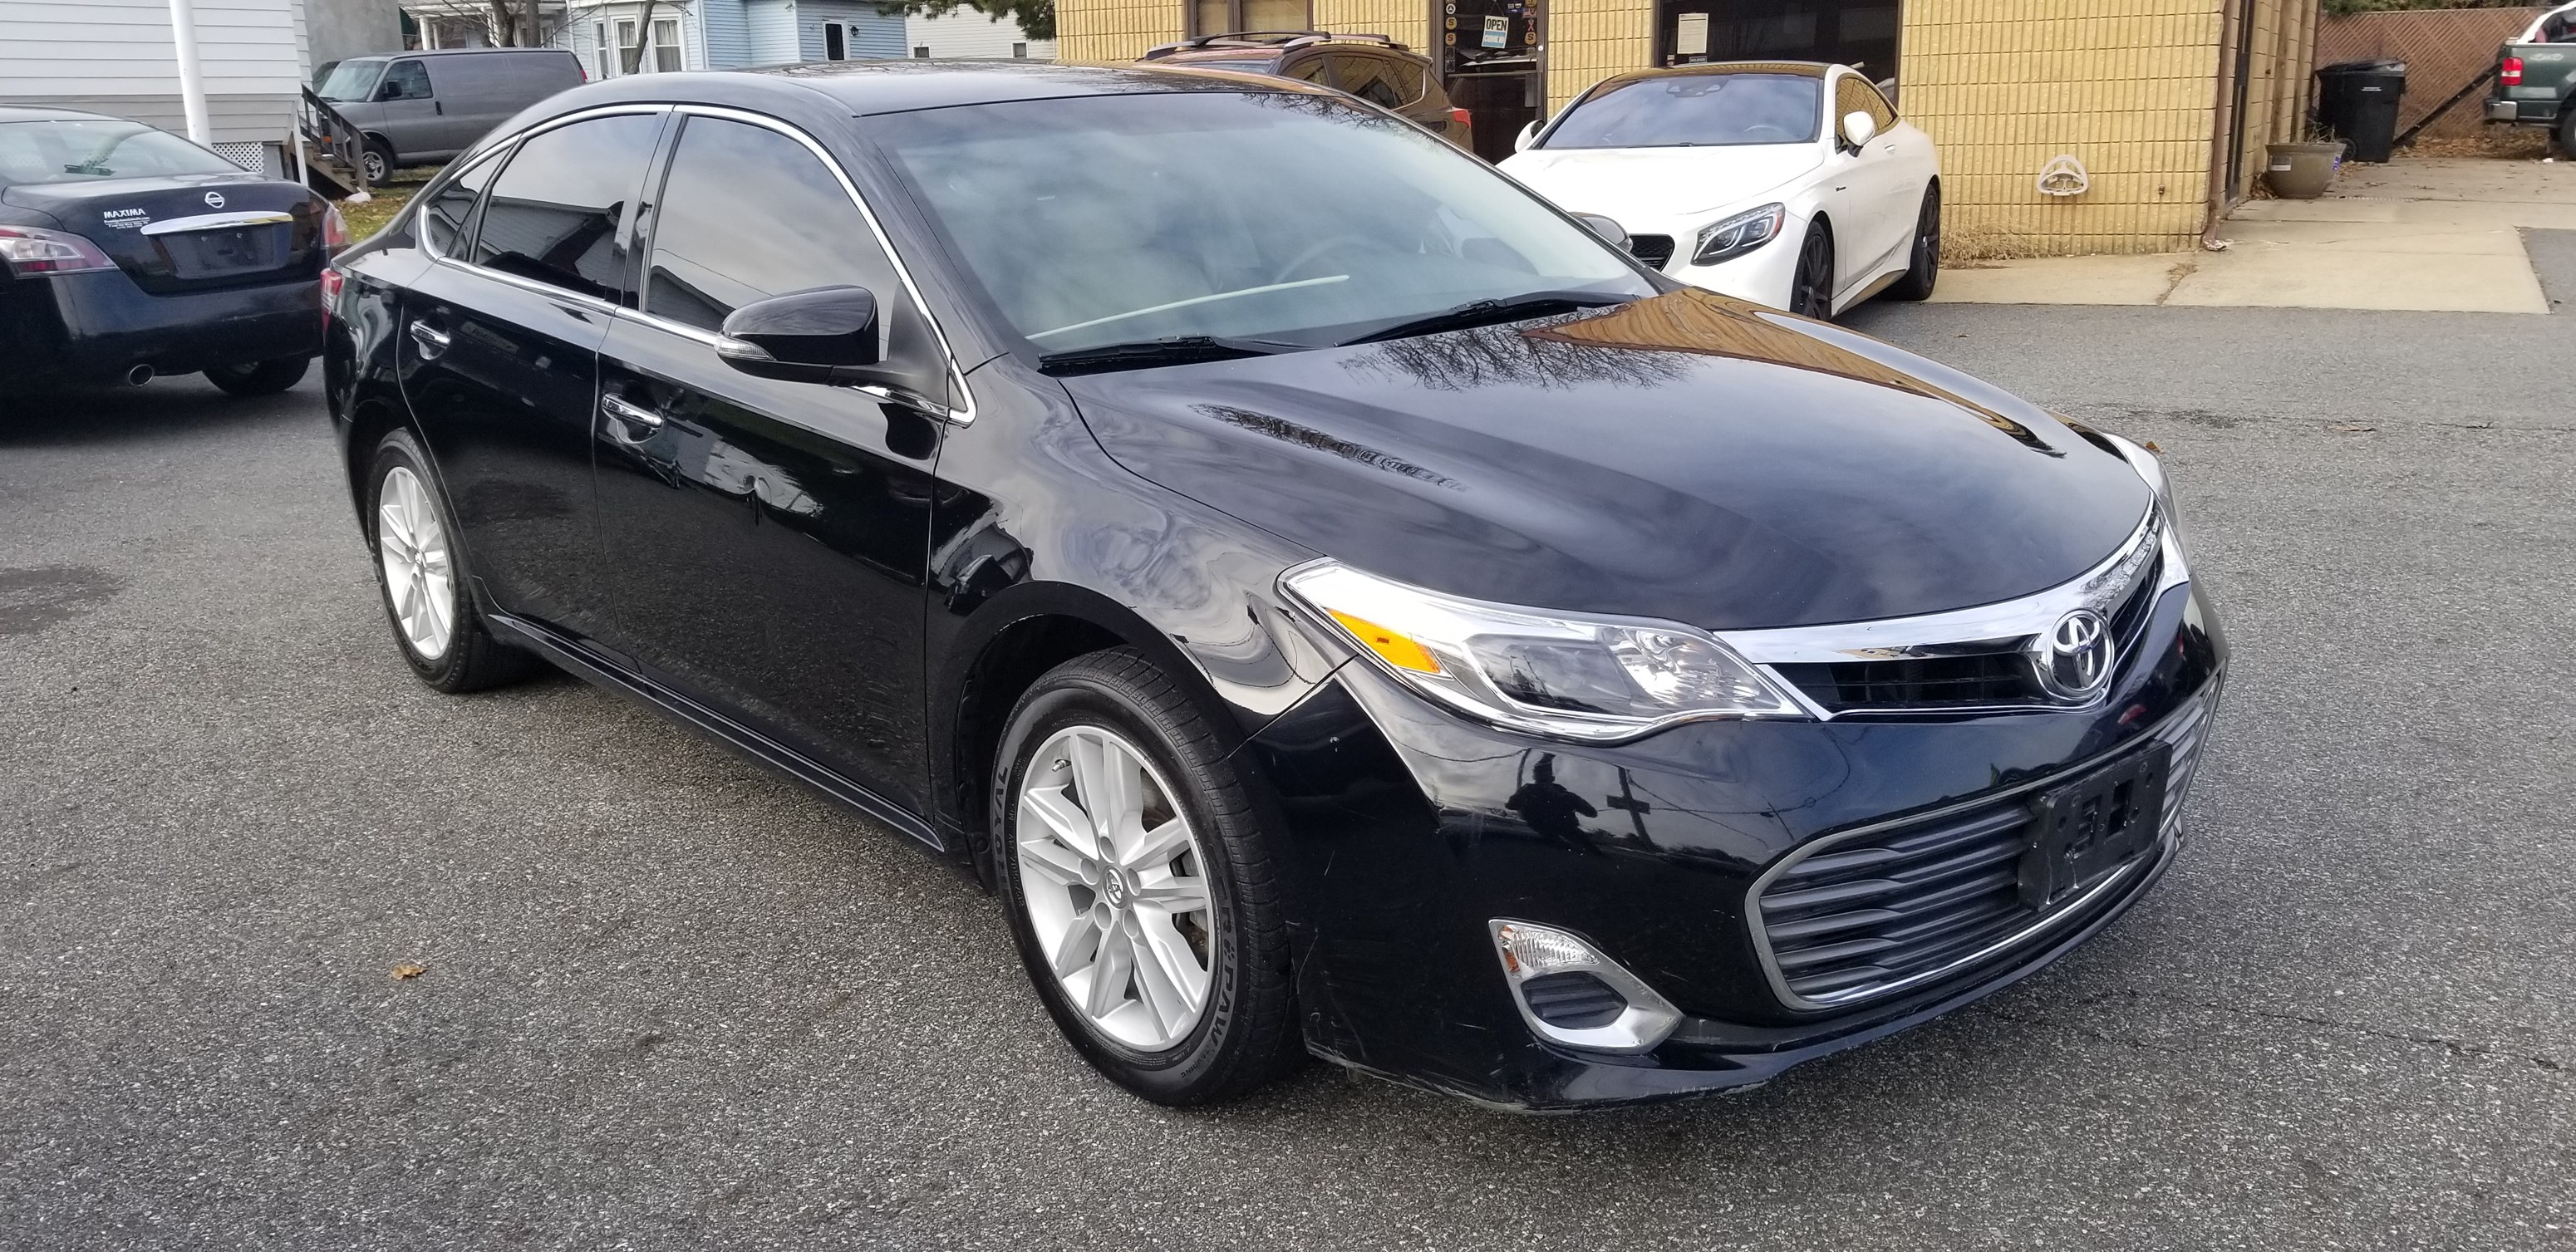 Carfax toyota Awesome 2015 toyota Avalon Xle 3 5l V6 Clean Carfax 1 Owner Under Warranty